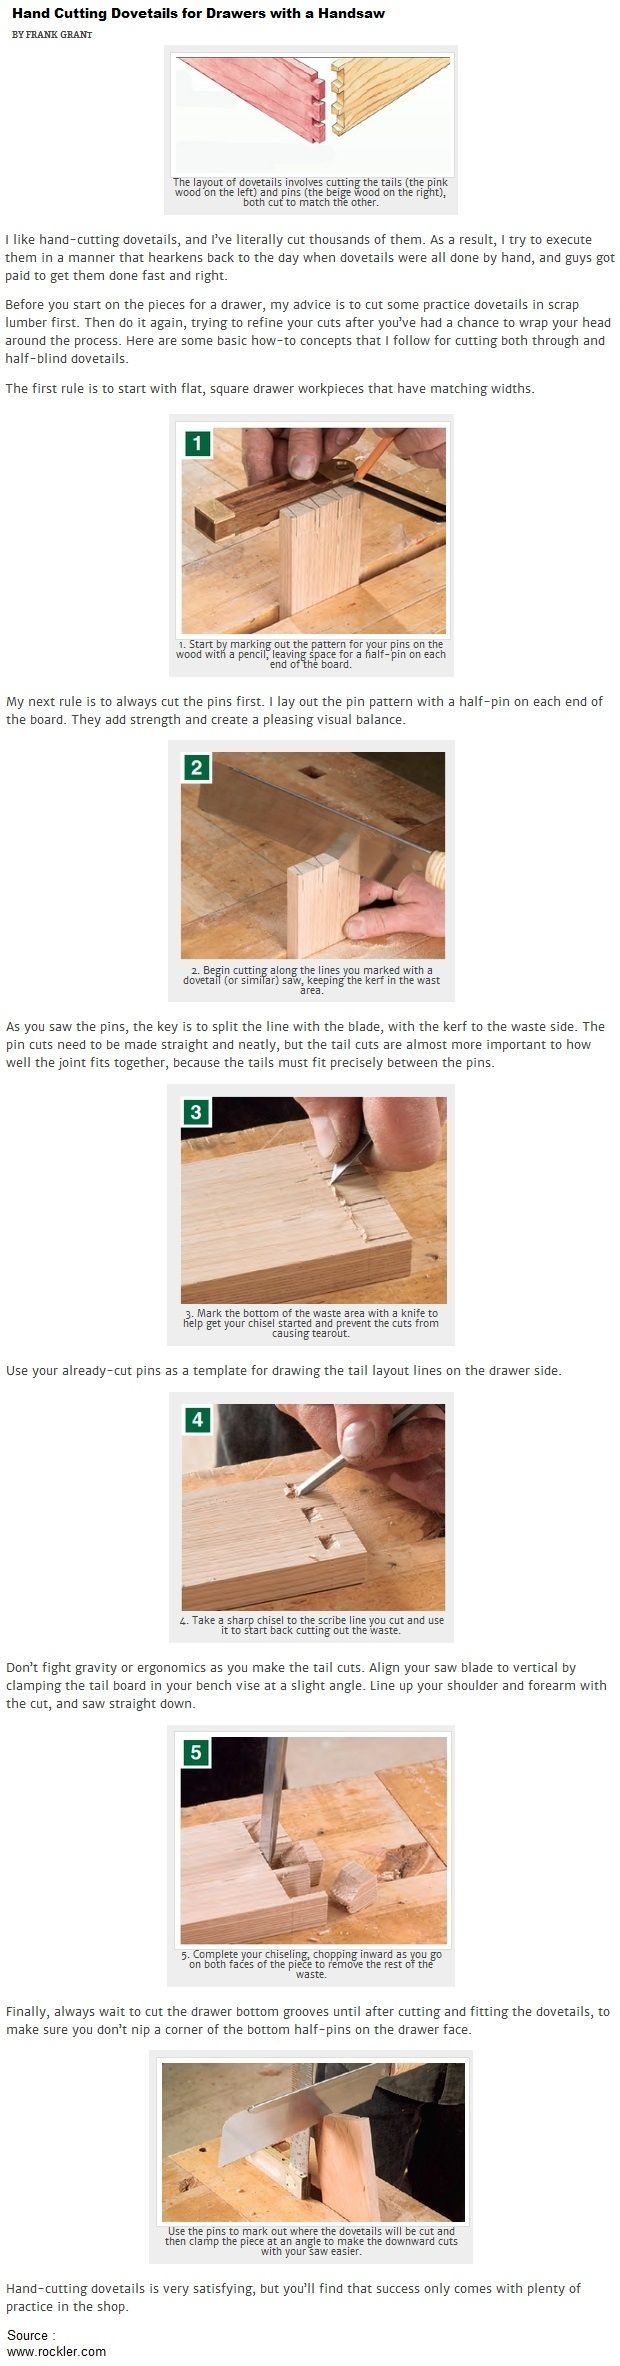 Hand Cutting Dovetails for Drawers with a Handsaw